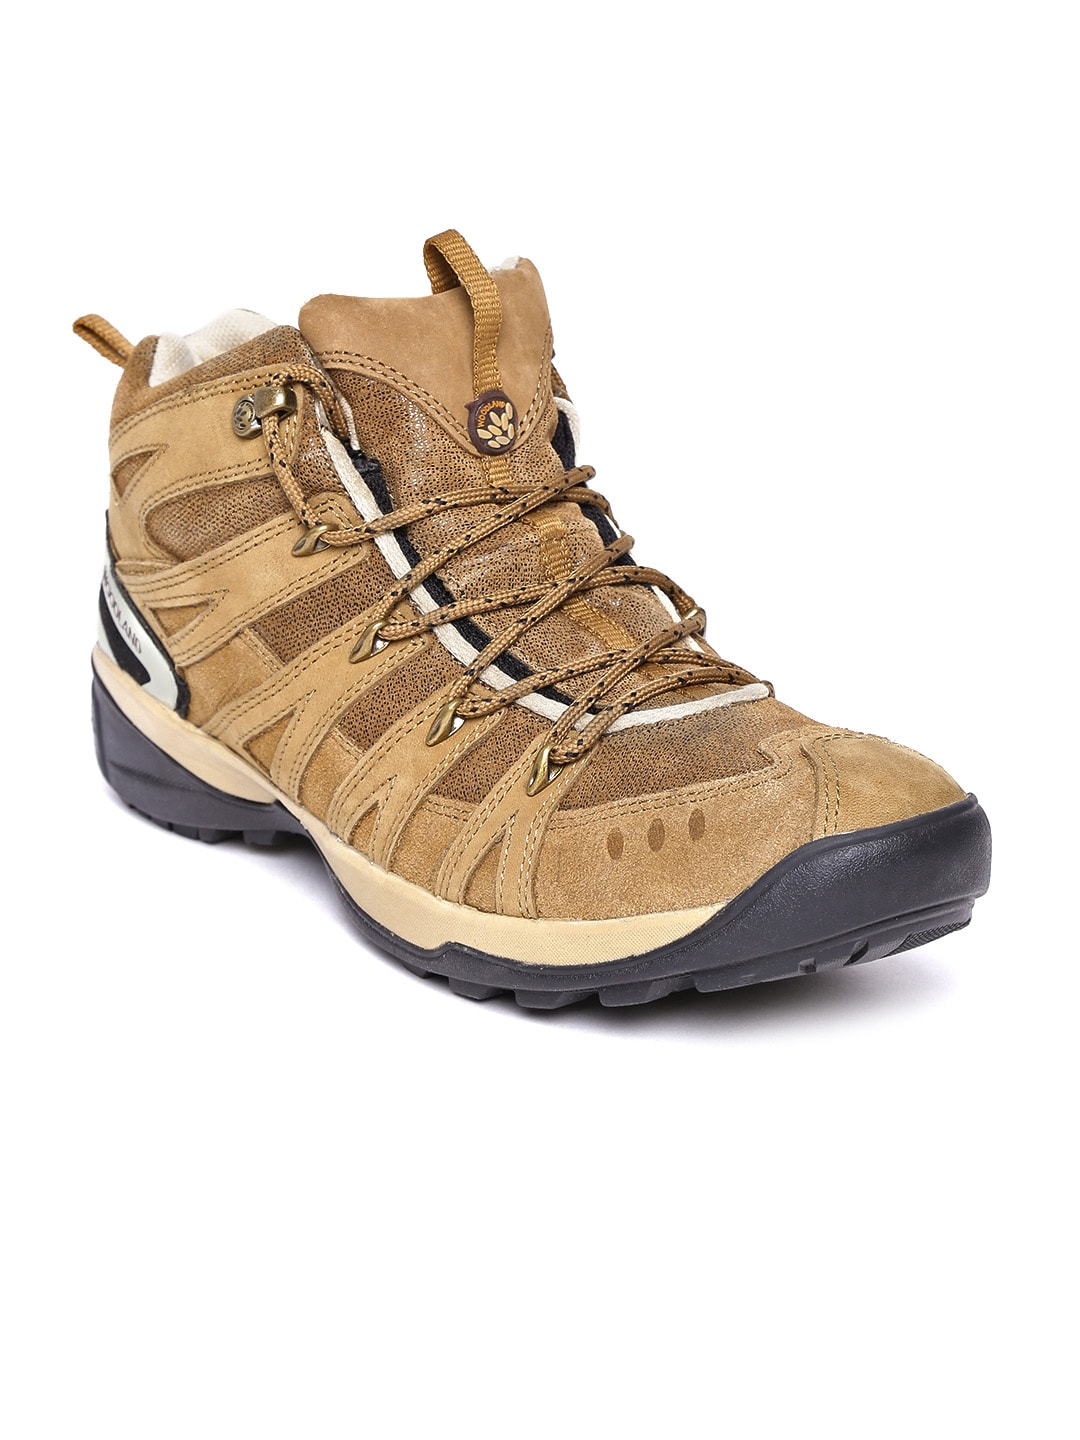 Outdoor Men Casual Shoes - Buy Outdoor Men Casual Shoes online in India 2e0a1ce41